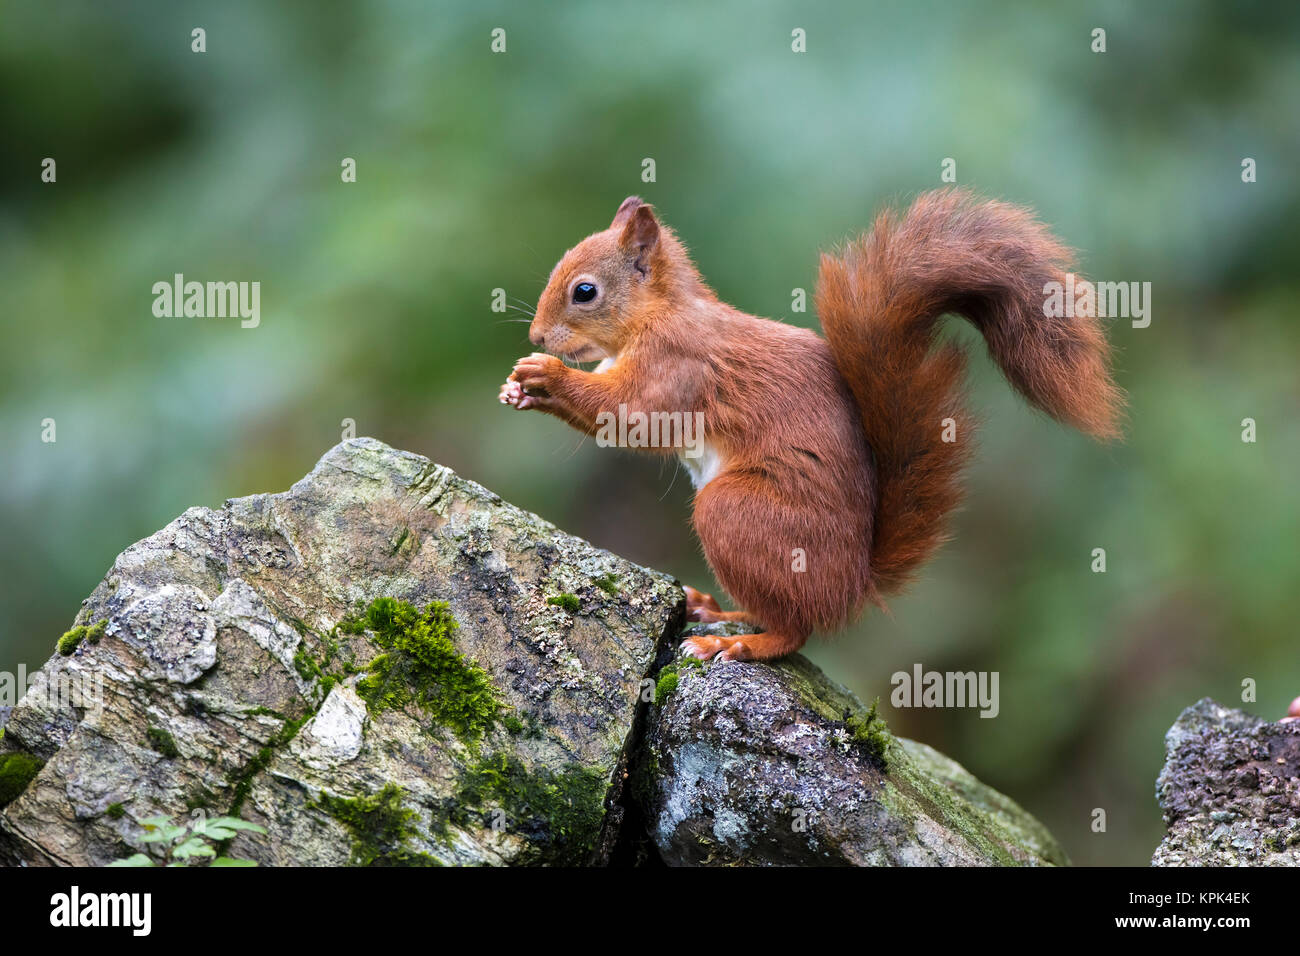 Red Squirrel (Sciurus vulgaris) eating from it's hands while standing on a moss covered rock; Dumfries and Galloway, Stock Photo